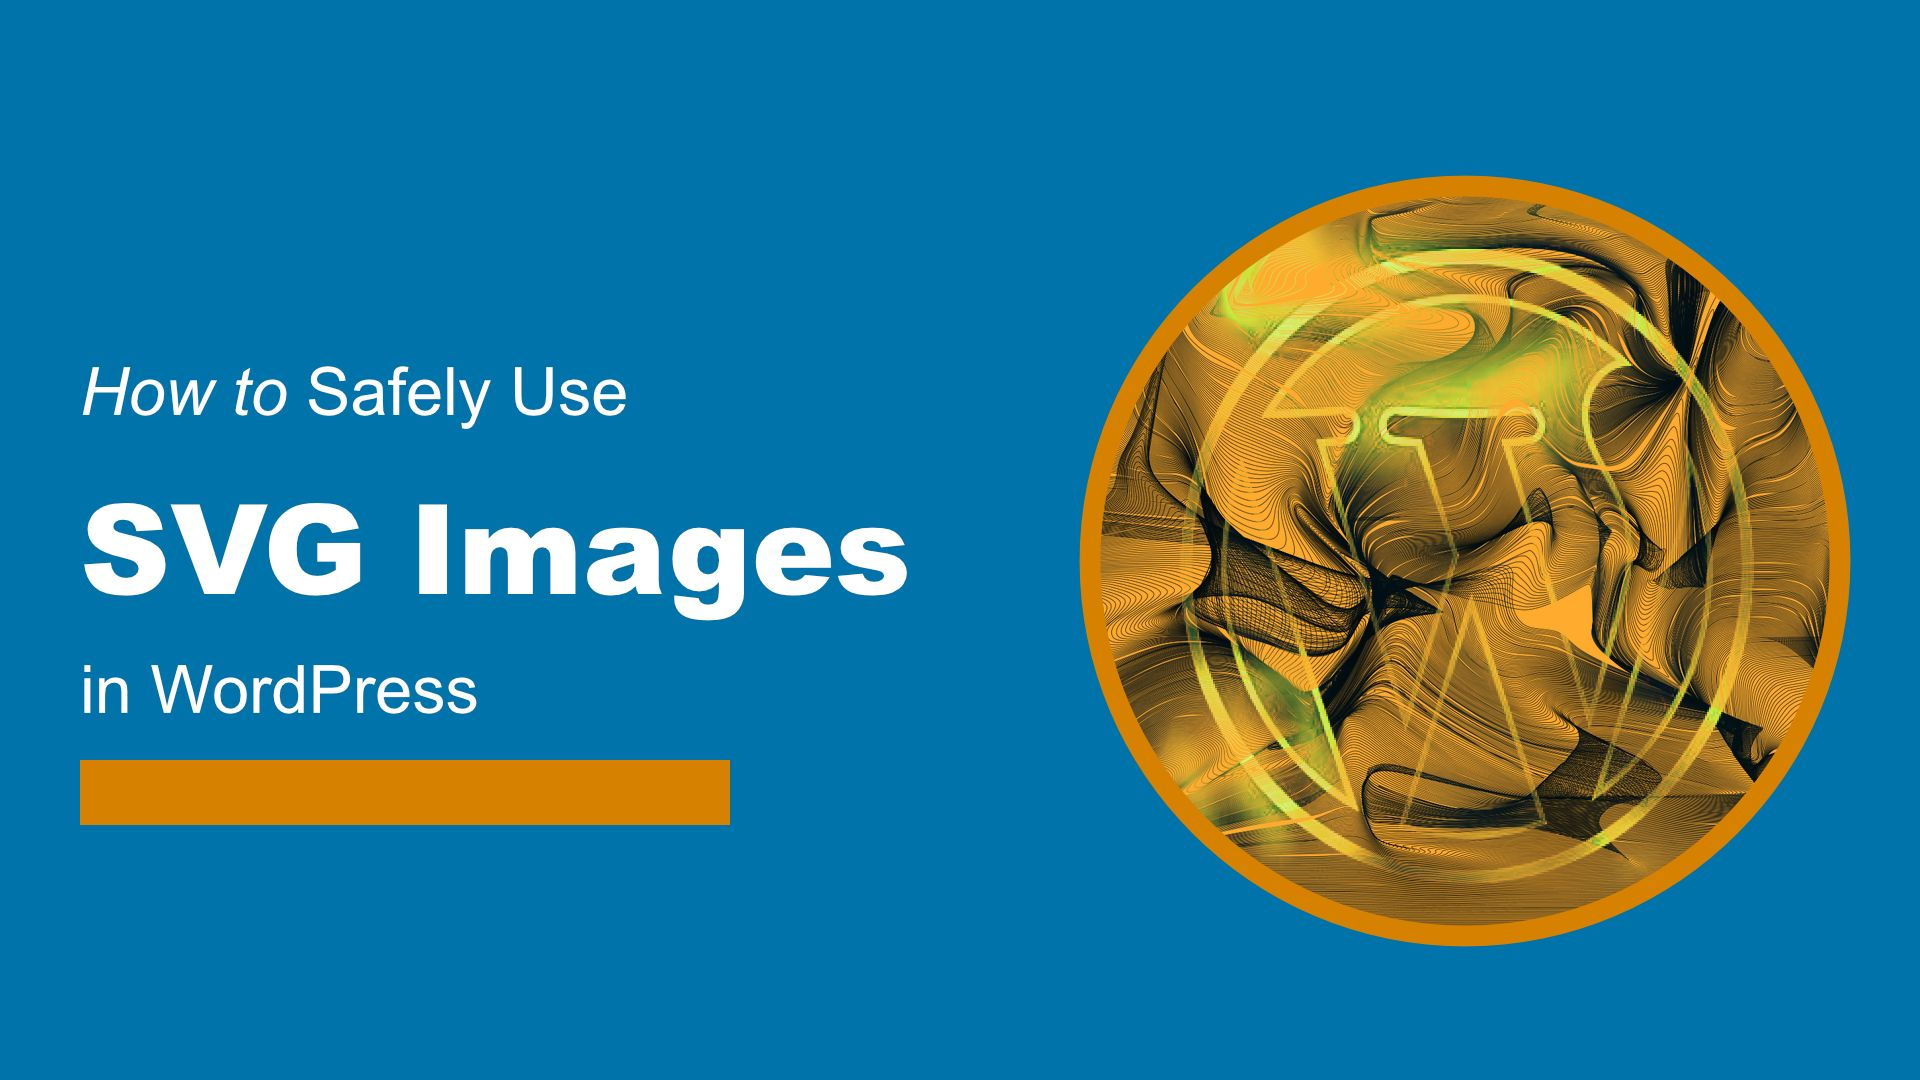 /svg-how-to-use-scalable-vector-graphics-in-wordpress-das37wd feature image